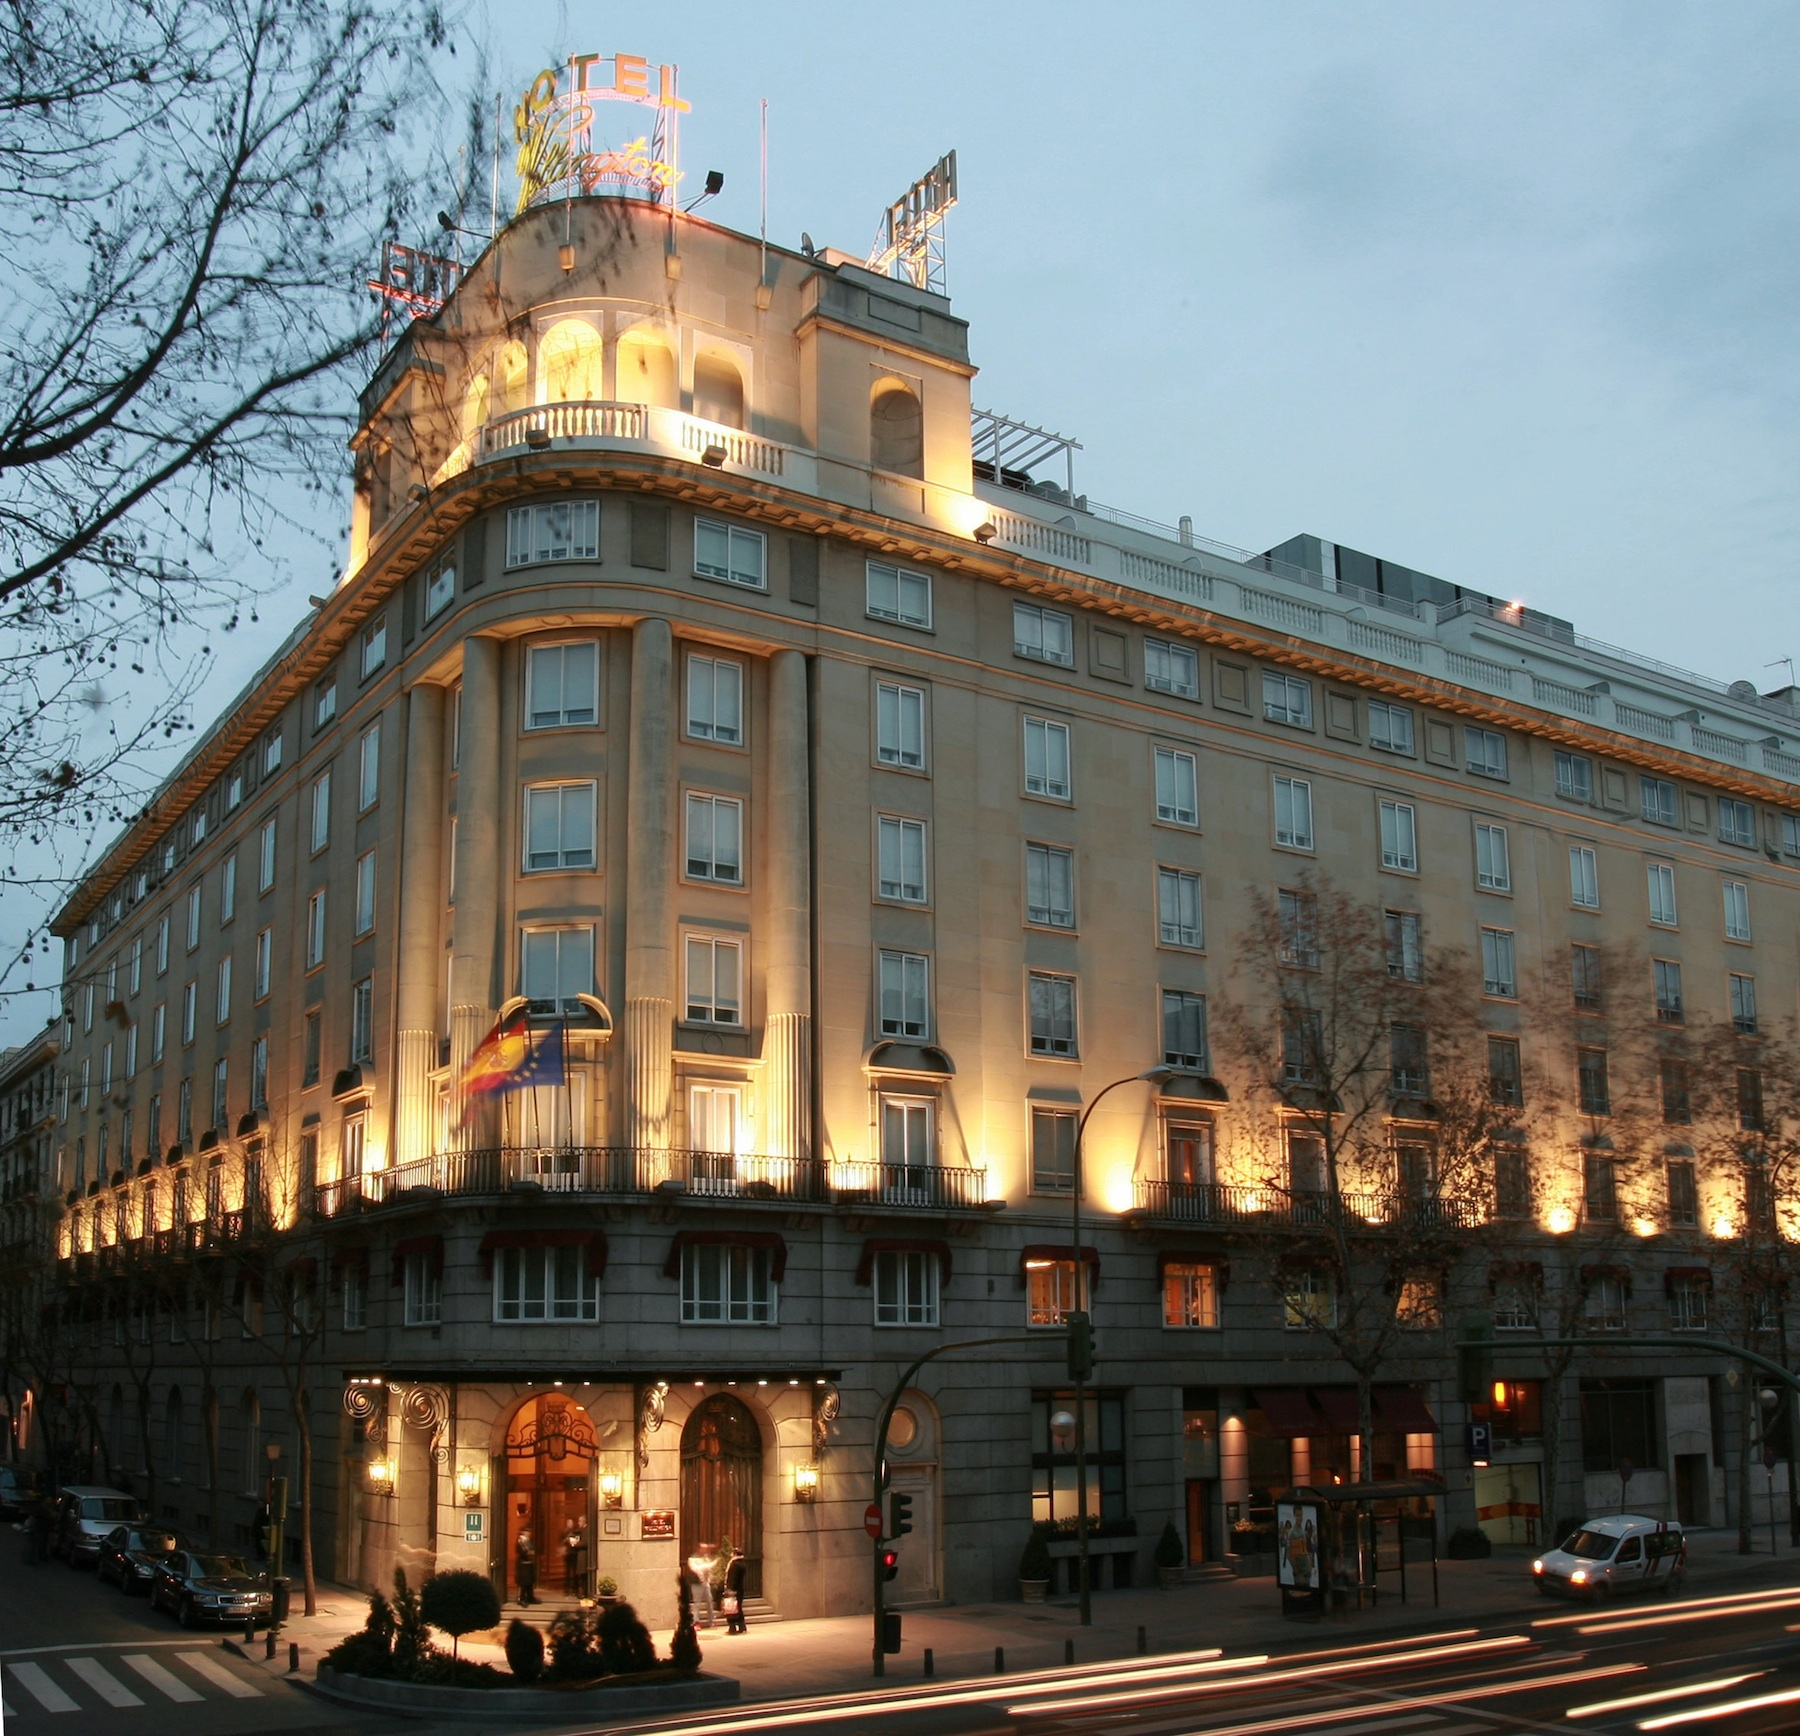 Top 10 luxury hotels in madrid spain blog purentonline for Design hotel urban madrid